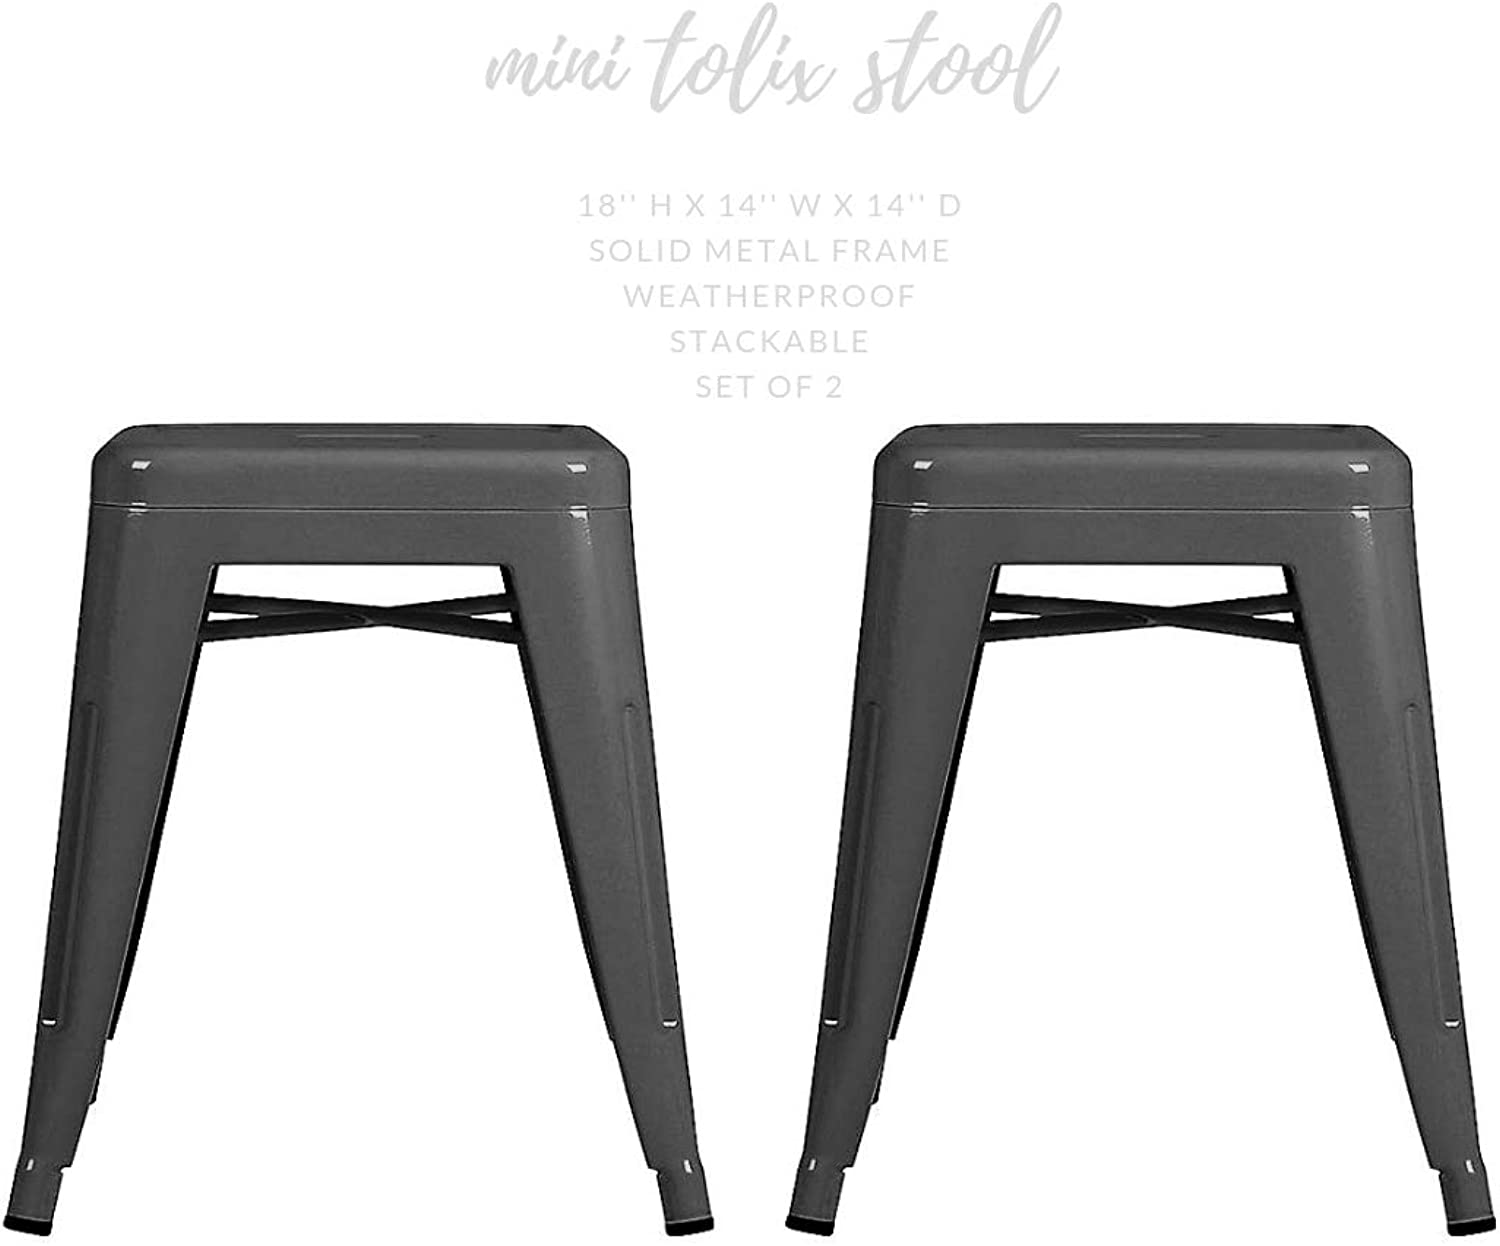 Take Me Home Furniture Mini Tolix Stool Backless Metal, Industrial Style Stool 18  High in Metal (Grey), Industrial Tolix Metal Set of 2, Perfect for Kids